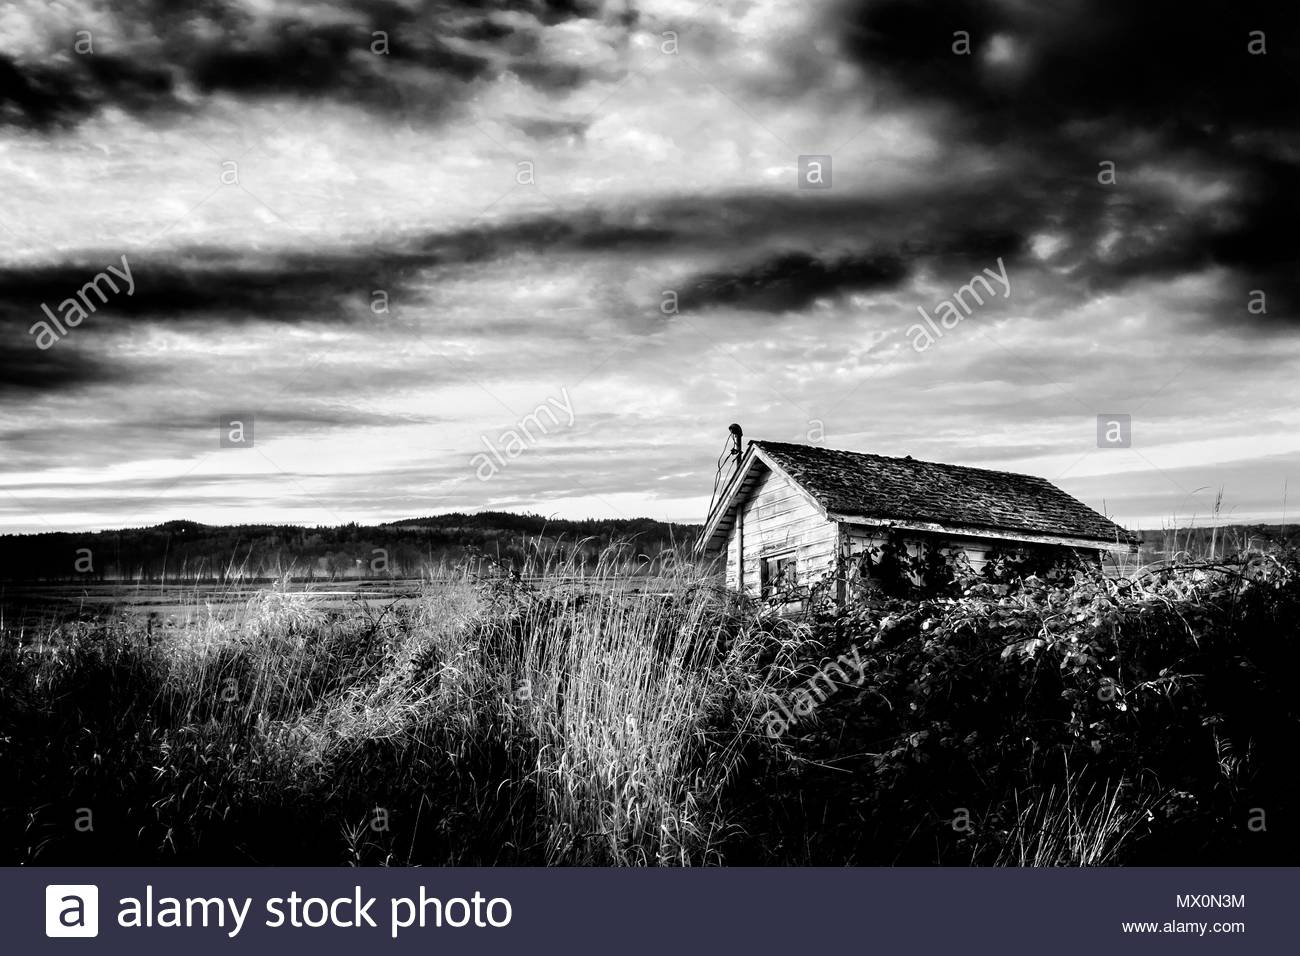 Black and white fine art landscape of abandoned building in field